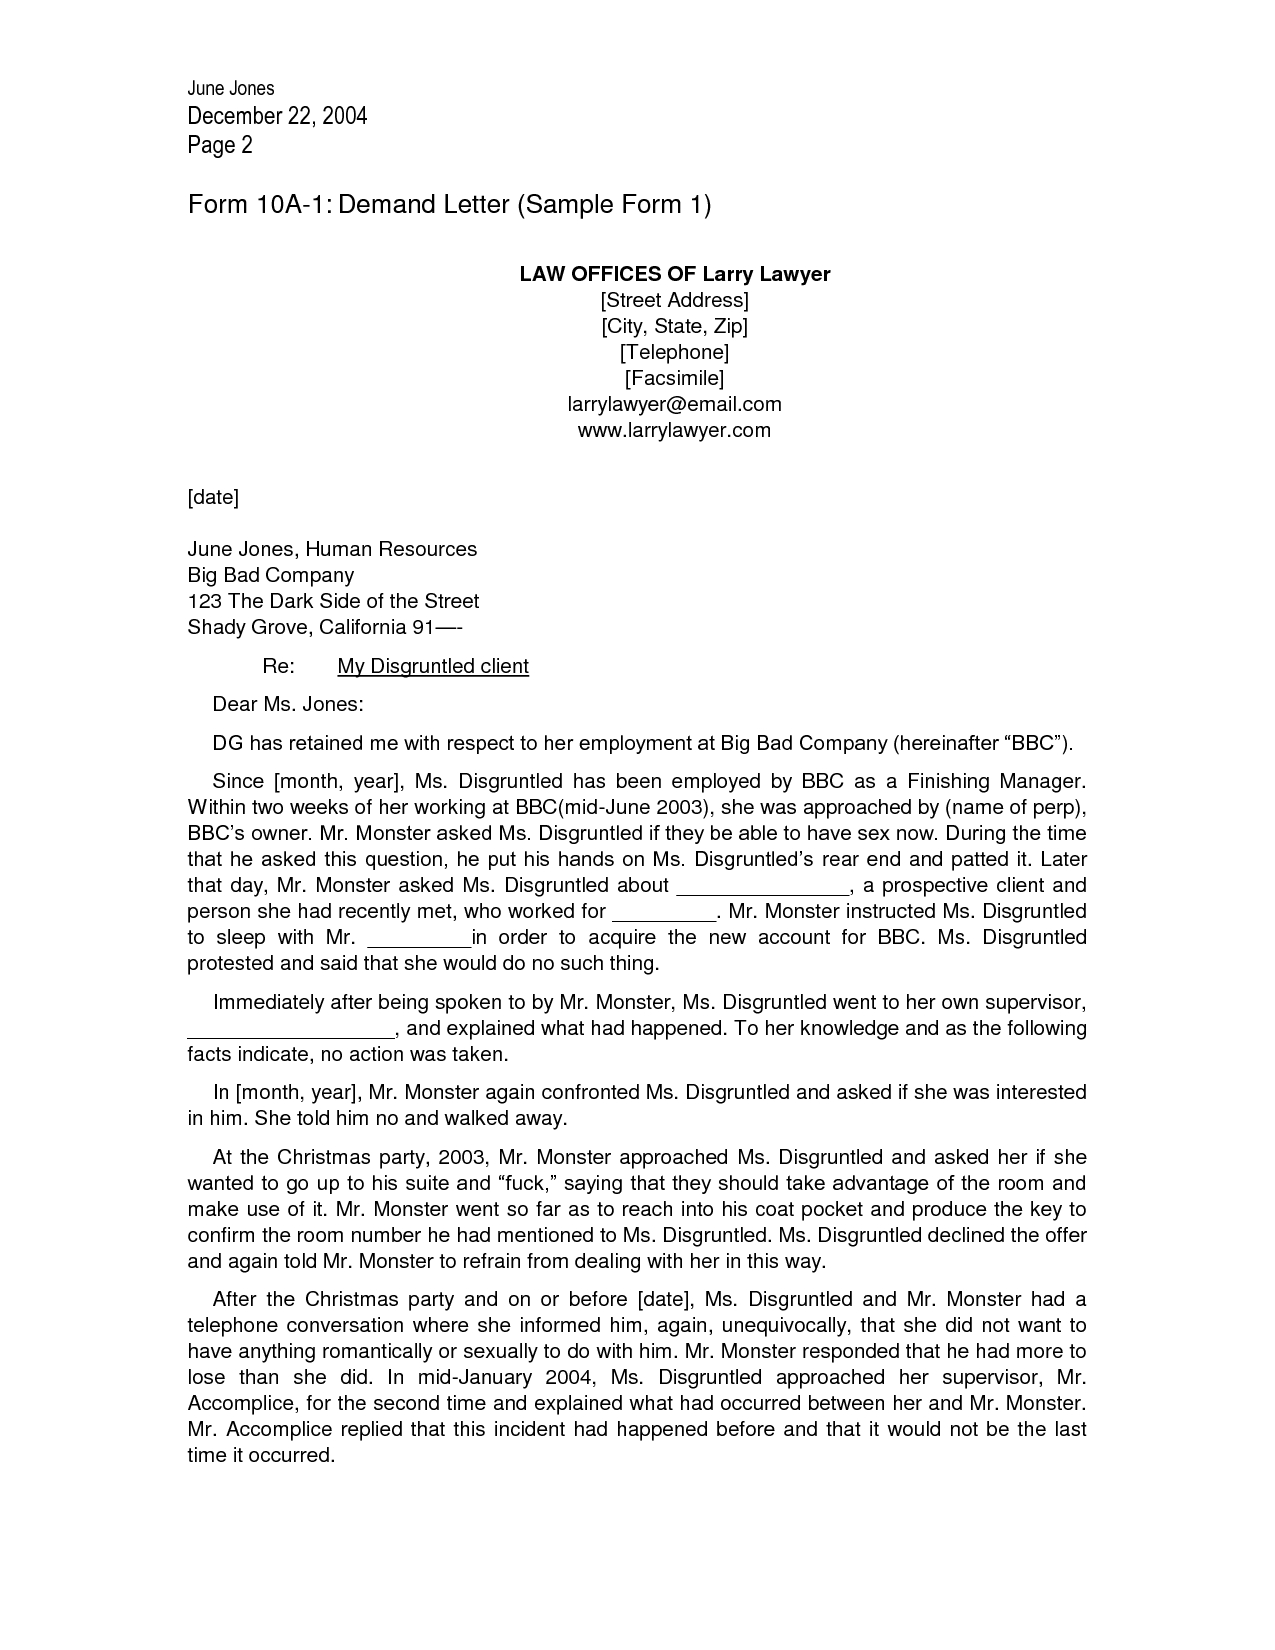 Settlement Letter Template - Lovely Letter Outline Template